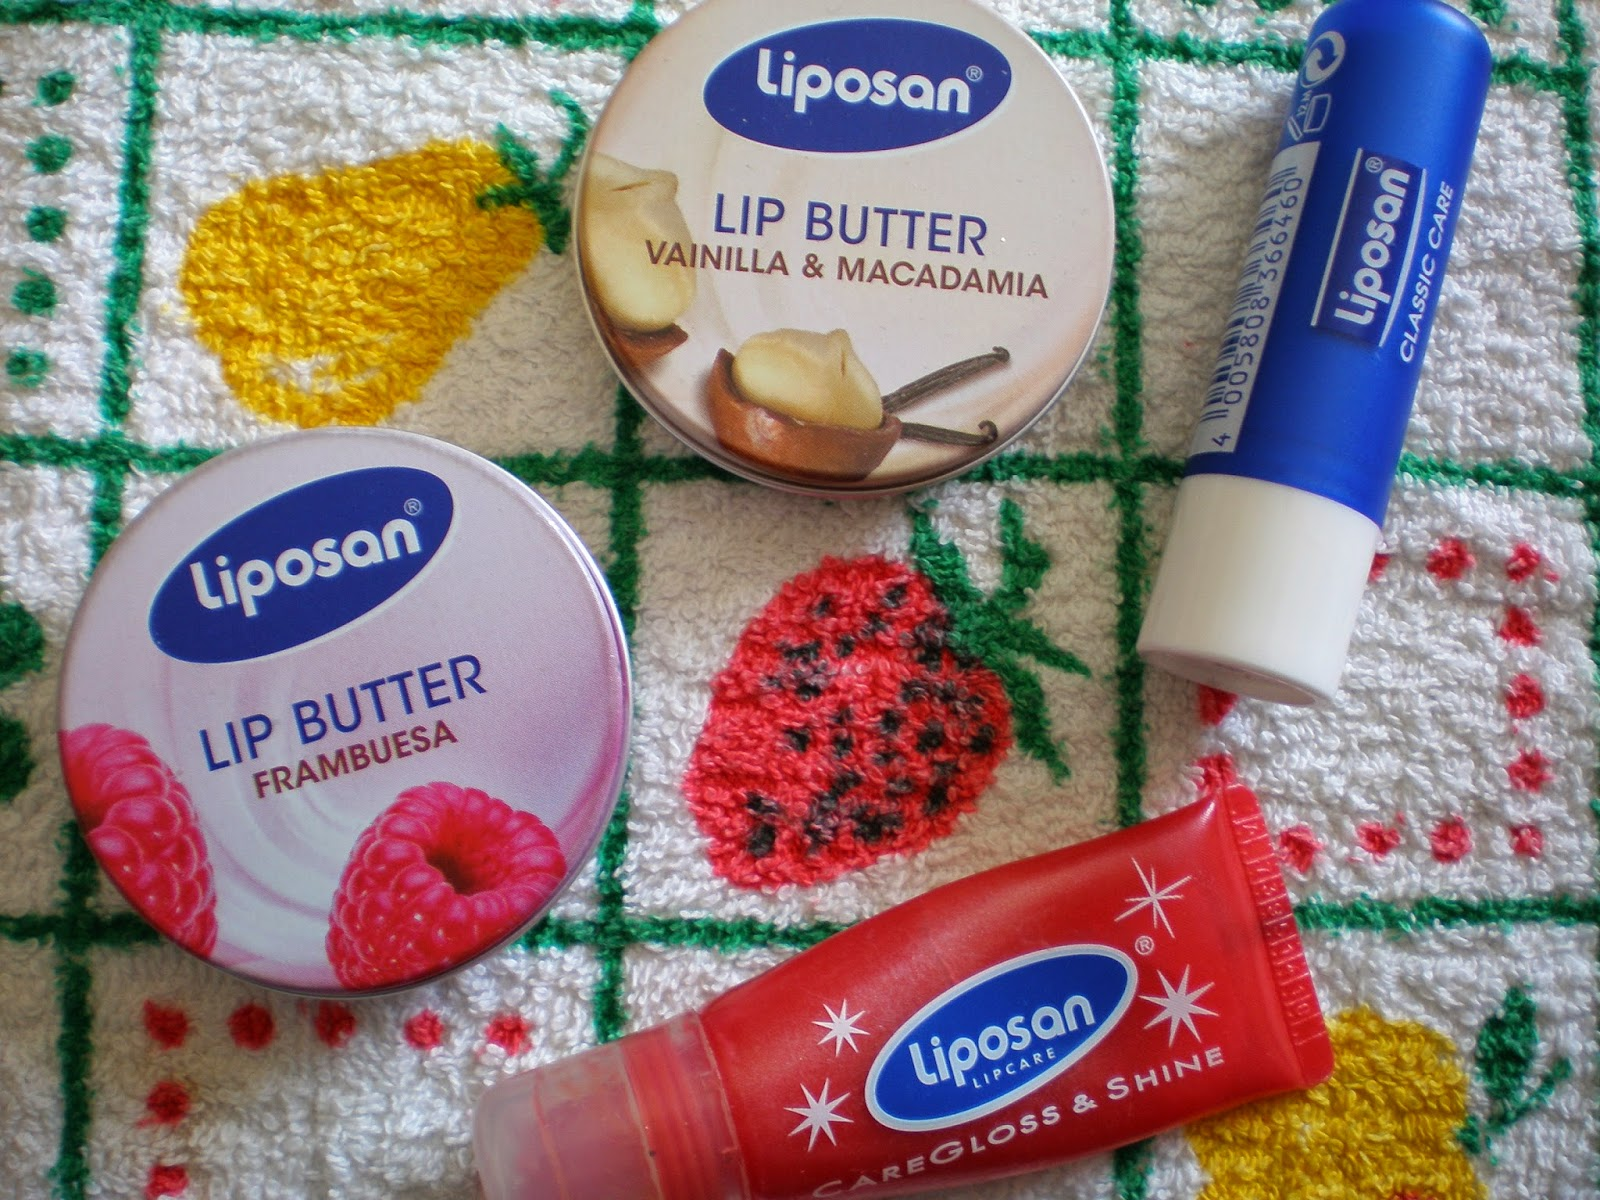 liposan Classic care, lip butter Frambuesa, lip butter Vanilla & Macadamia, caregloss & shine